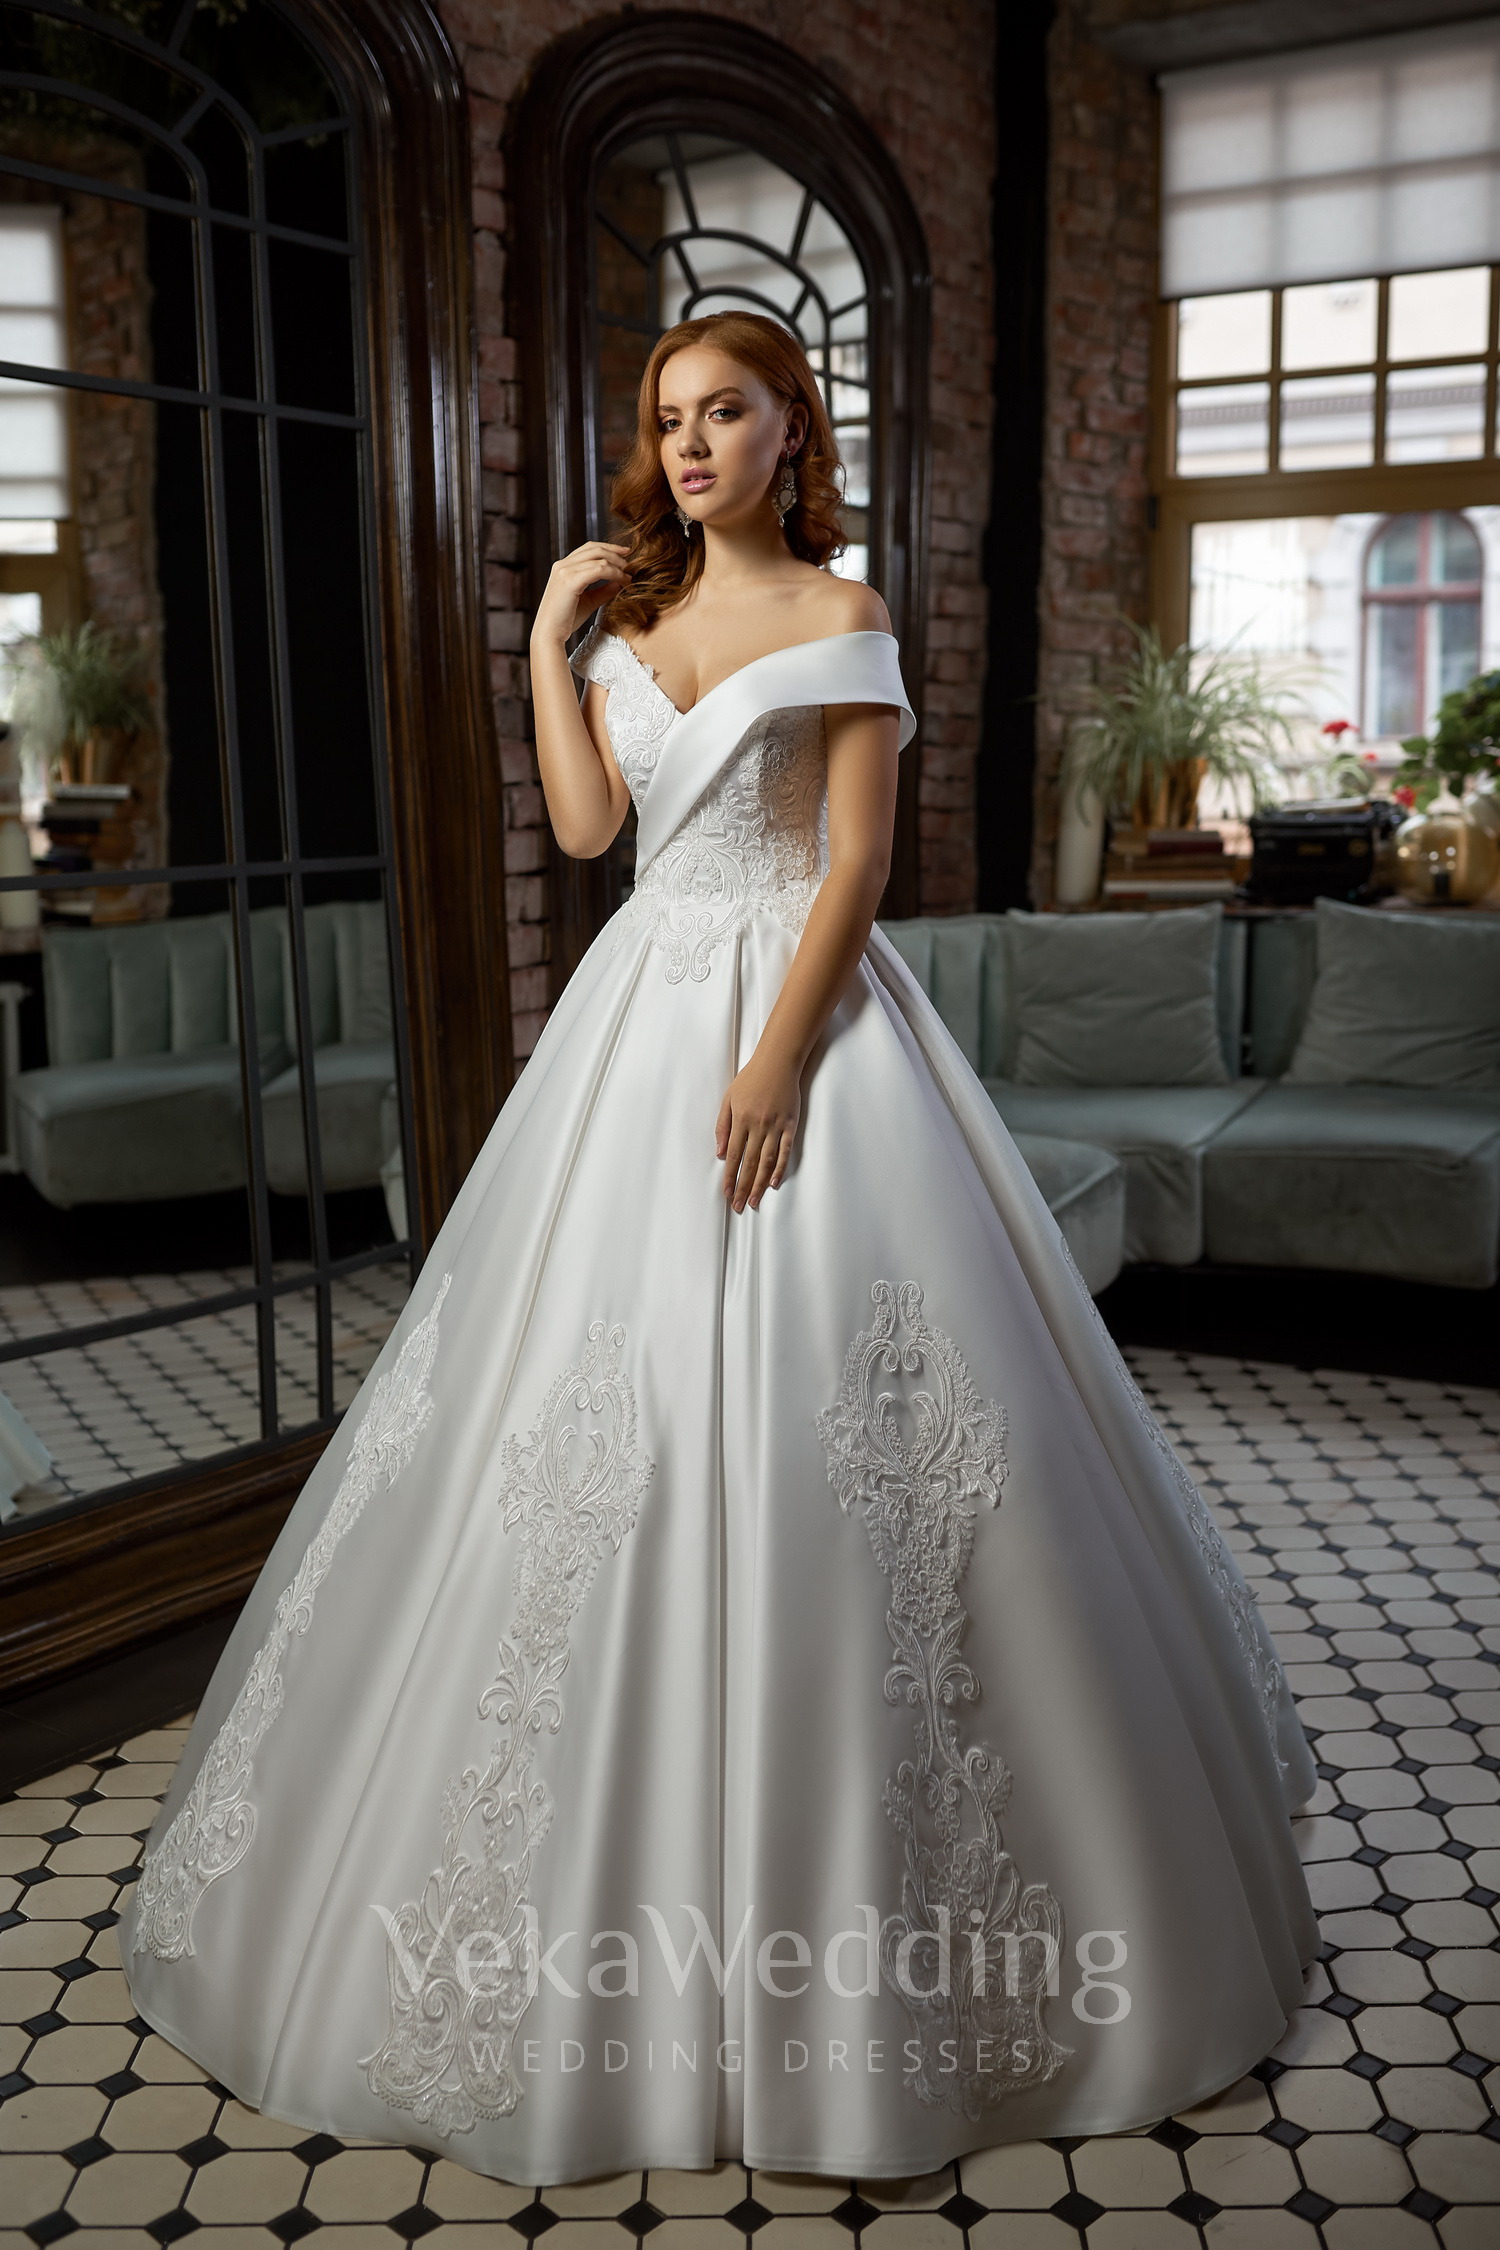 https://vekawedding.com/images/stories/virtuemart/product/DSC_4814.jpg